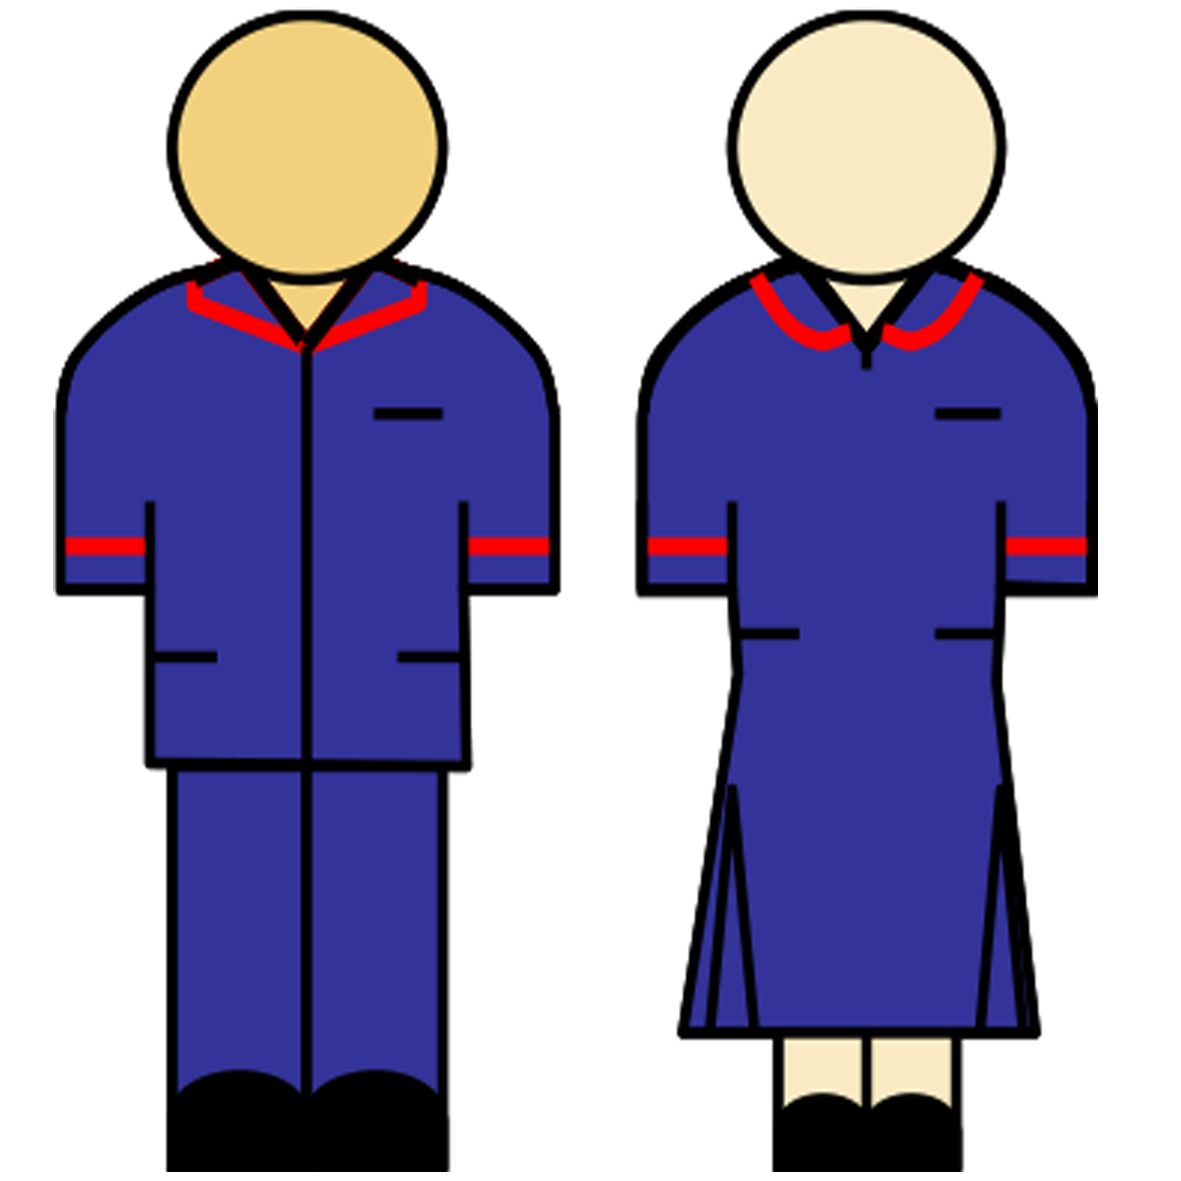 Blue uniform with red stripe